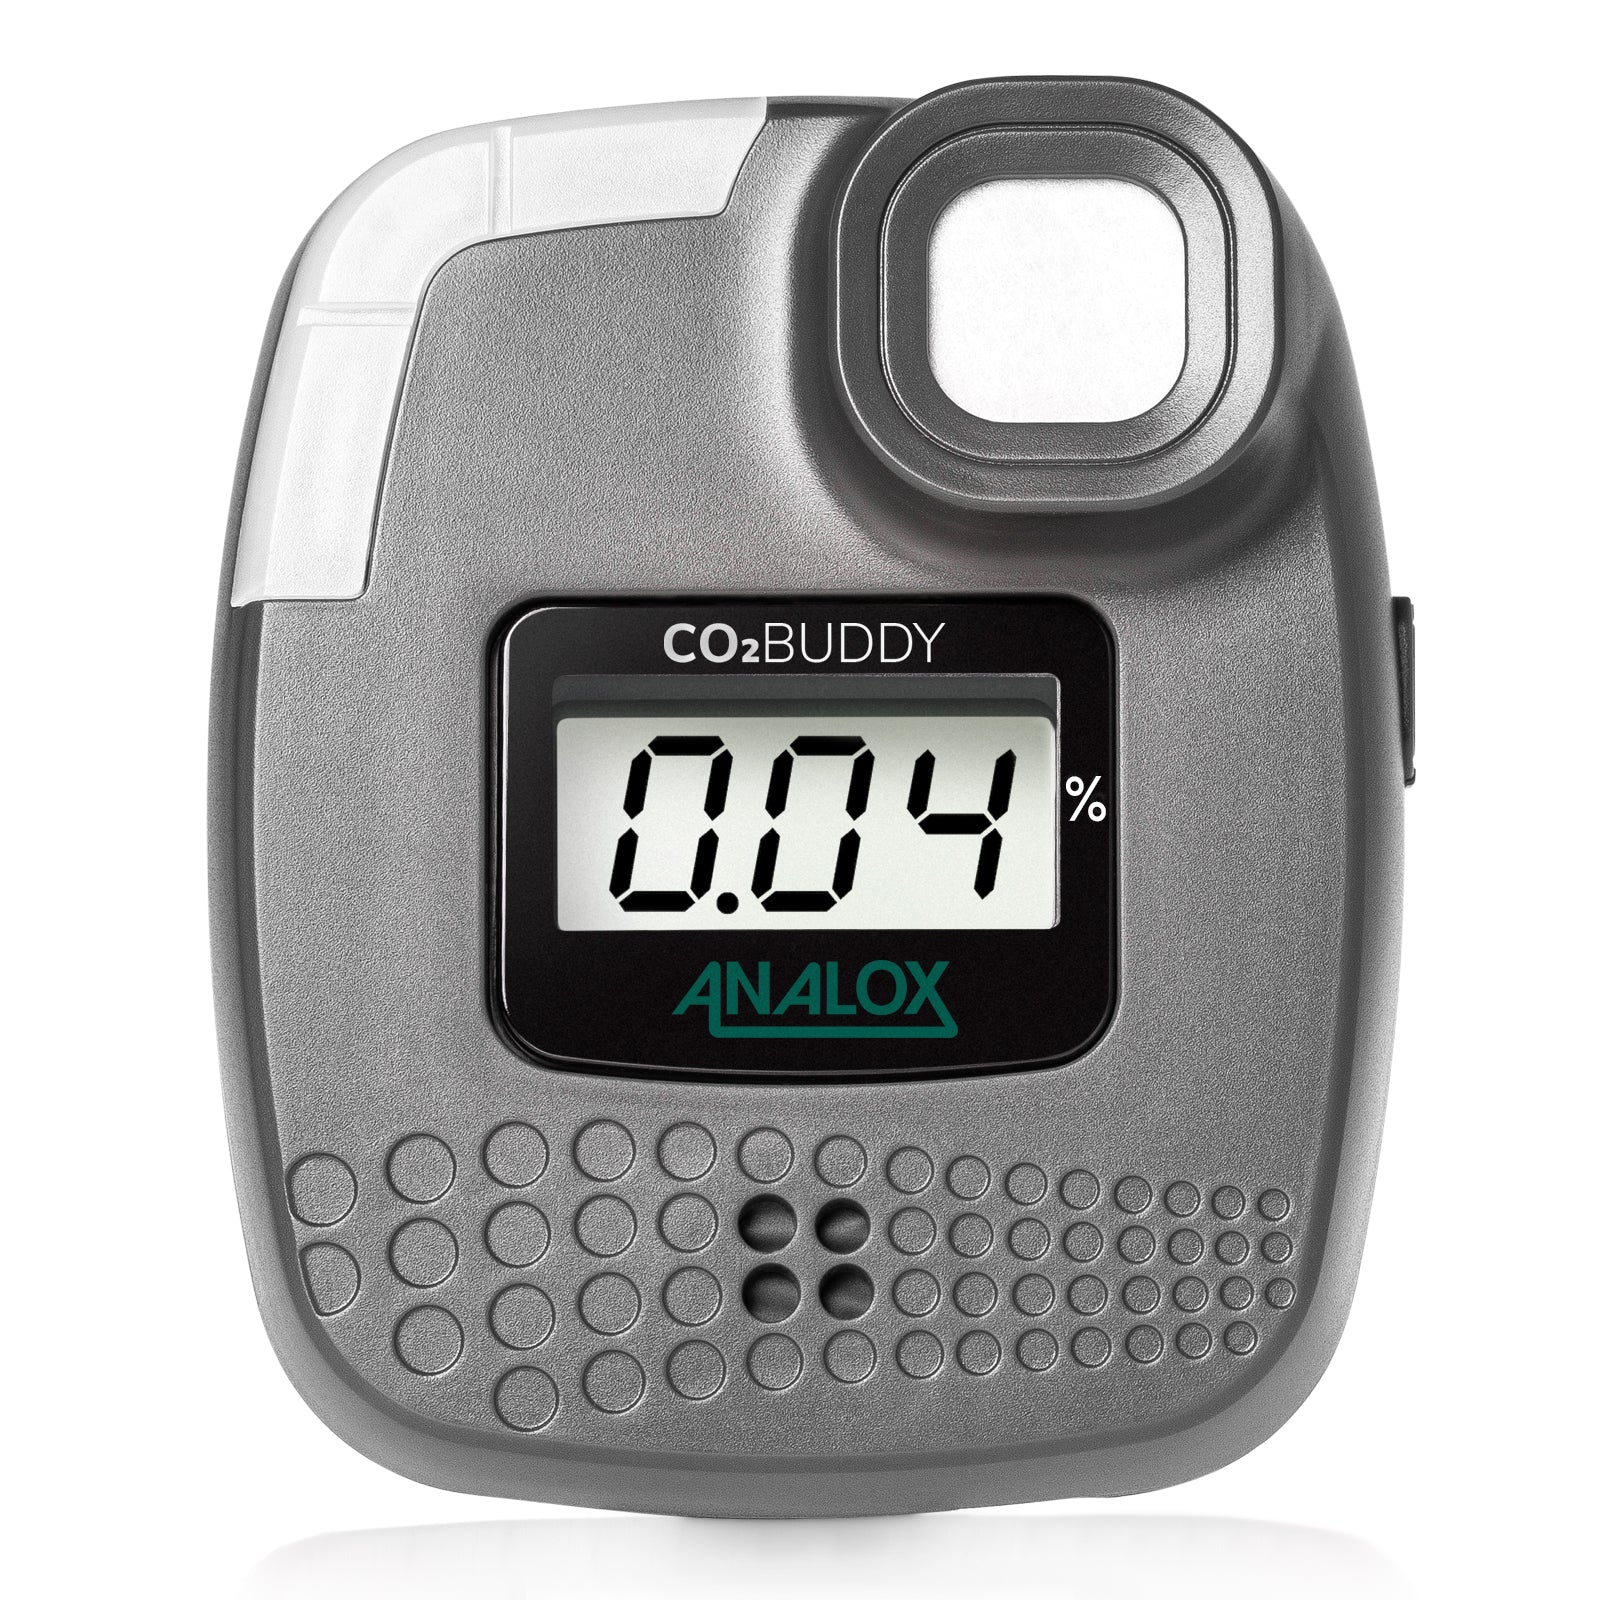 The CO2BUDDY by Analox, a portable carbon dioxide (CO2) unit that sets off an alarm, vibration and strobe when a dangerous level of carbon dioxide (CO2) is detected